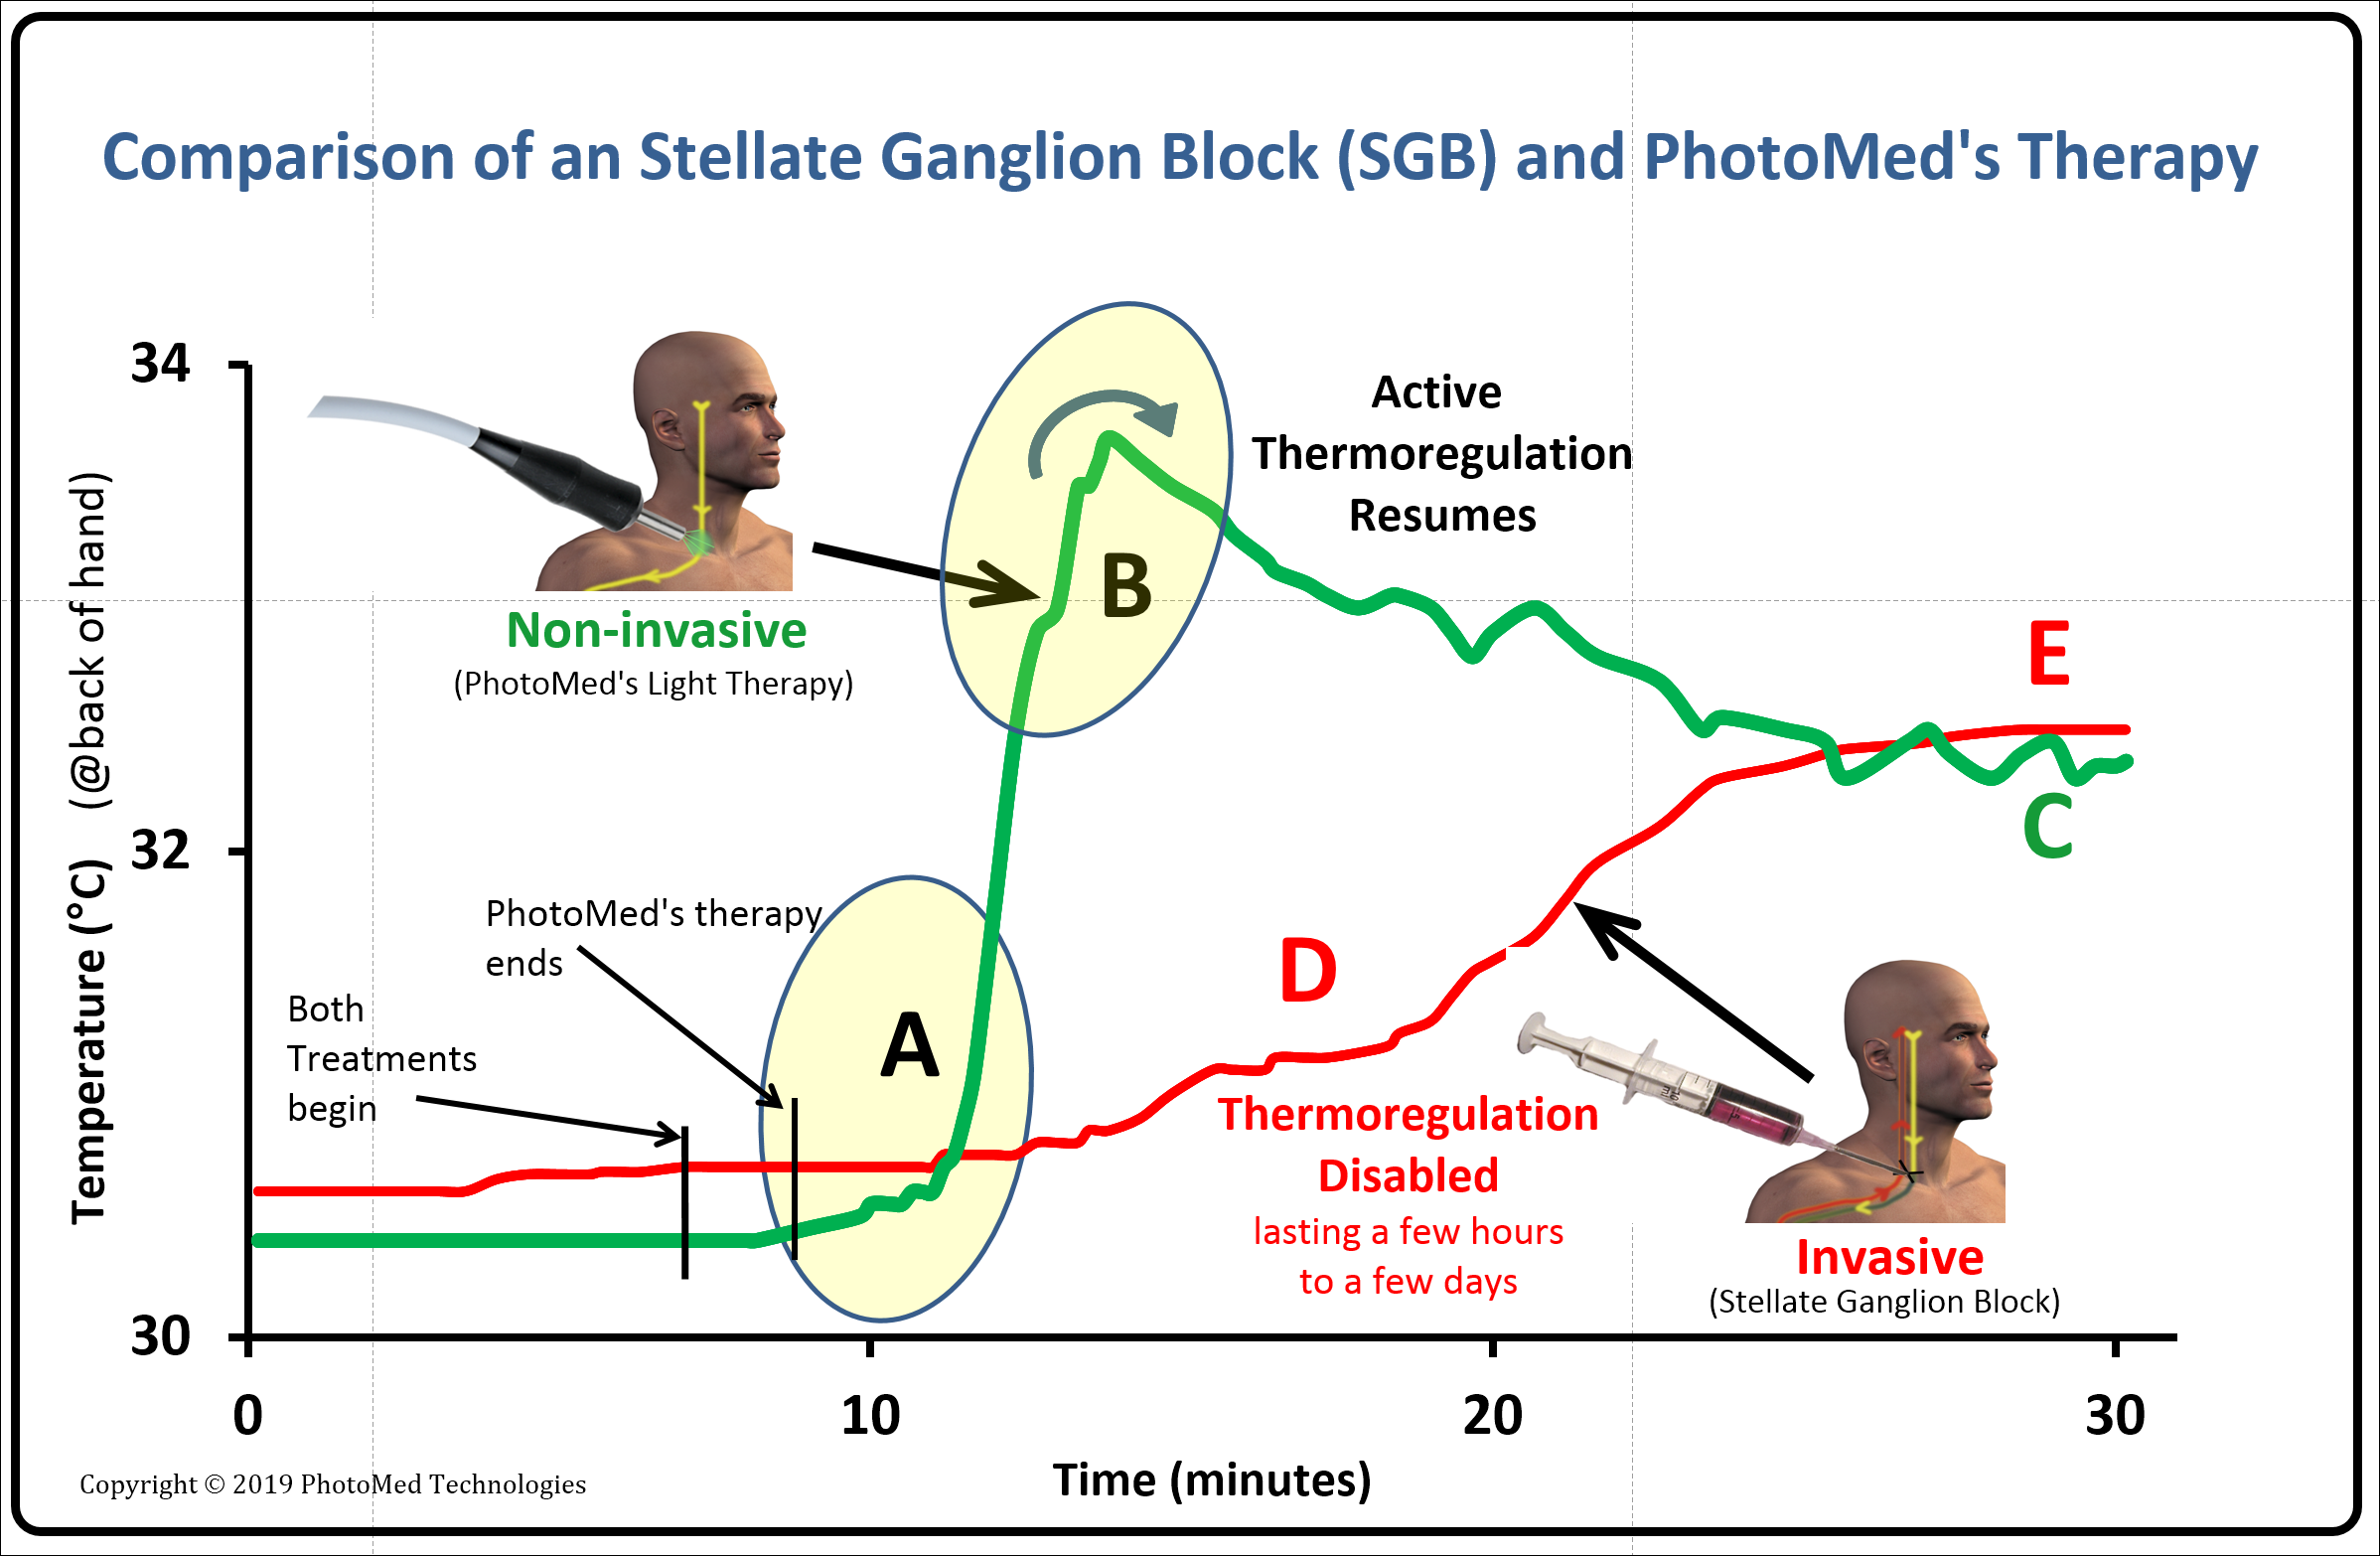 Figure 5  - Comparison of the thermal effects of a stellate ganglion block (SGB) vs. PhotoMed's therapy. For illustration purposes, the starting times and temperatures are aligned. The key observation is that the SGB forces warming by stopping thermoregulation whereas PhotoMed's no-invasive therapy prompts thermoregulation to shift to a comfortable temperature.